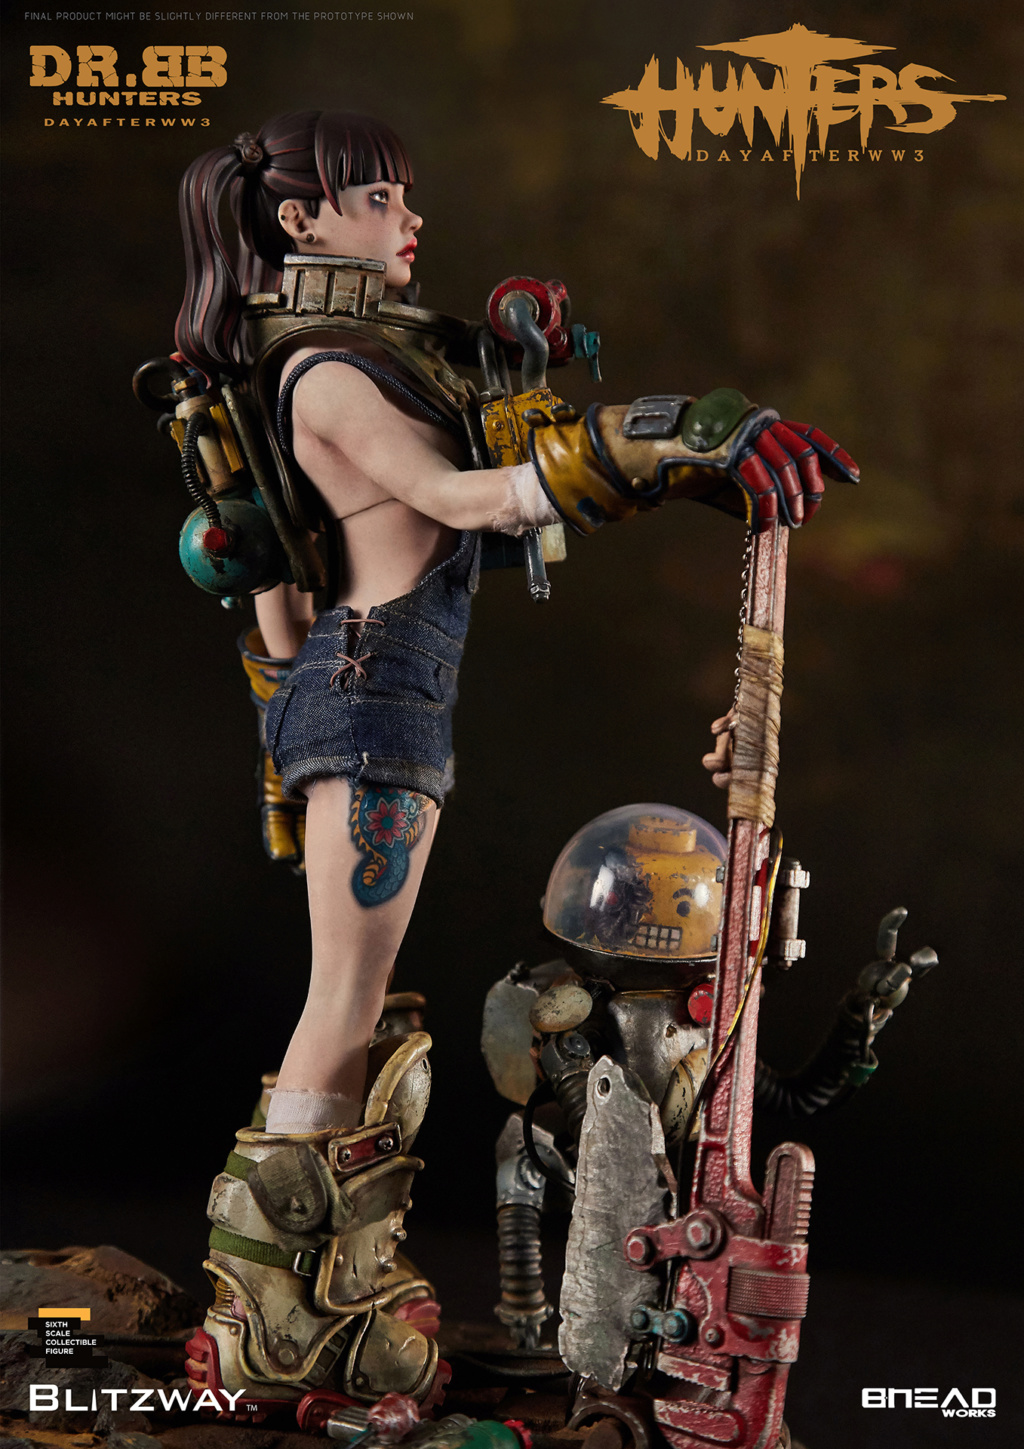 Robot - NEW PRODUCT: Blitzway: 1/6 scale HUNTERS : Day After WWlll: Dr.BB Action Figure 15171